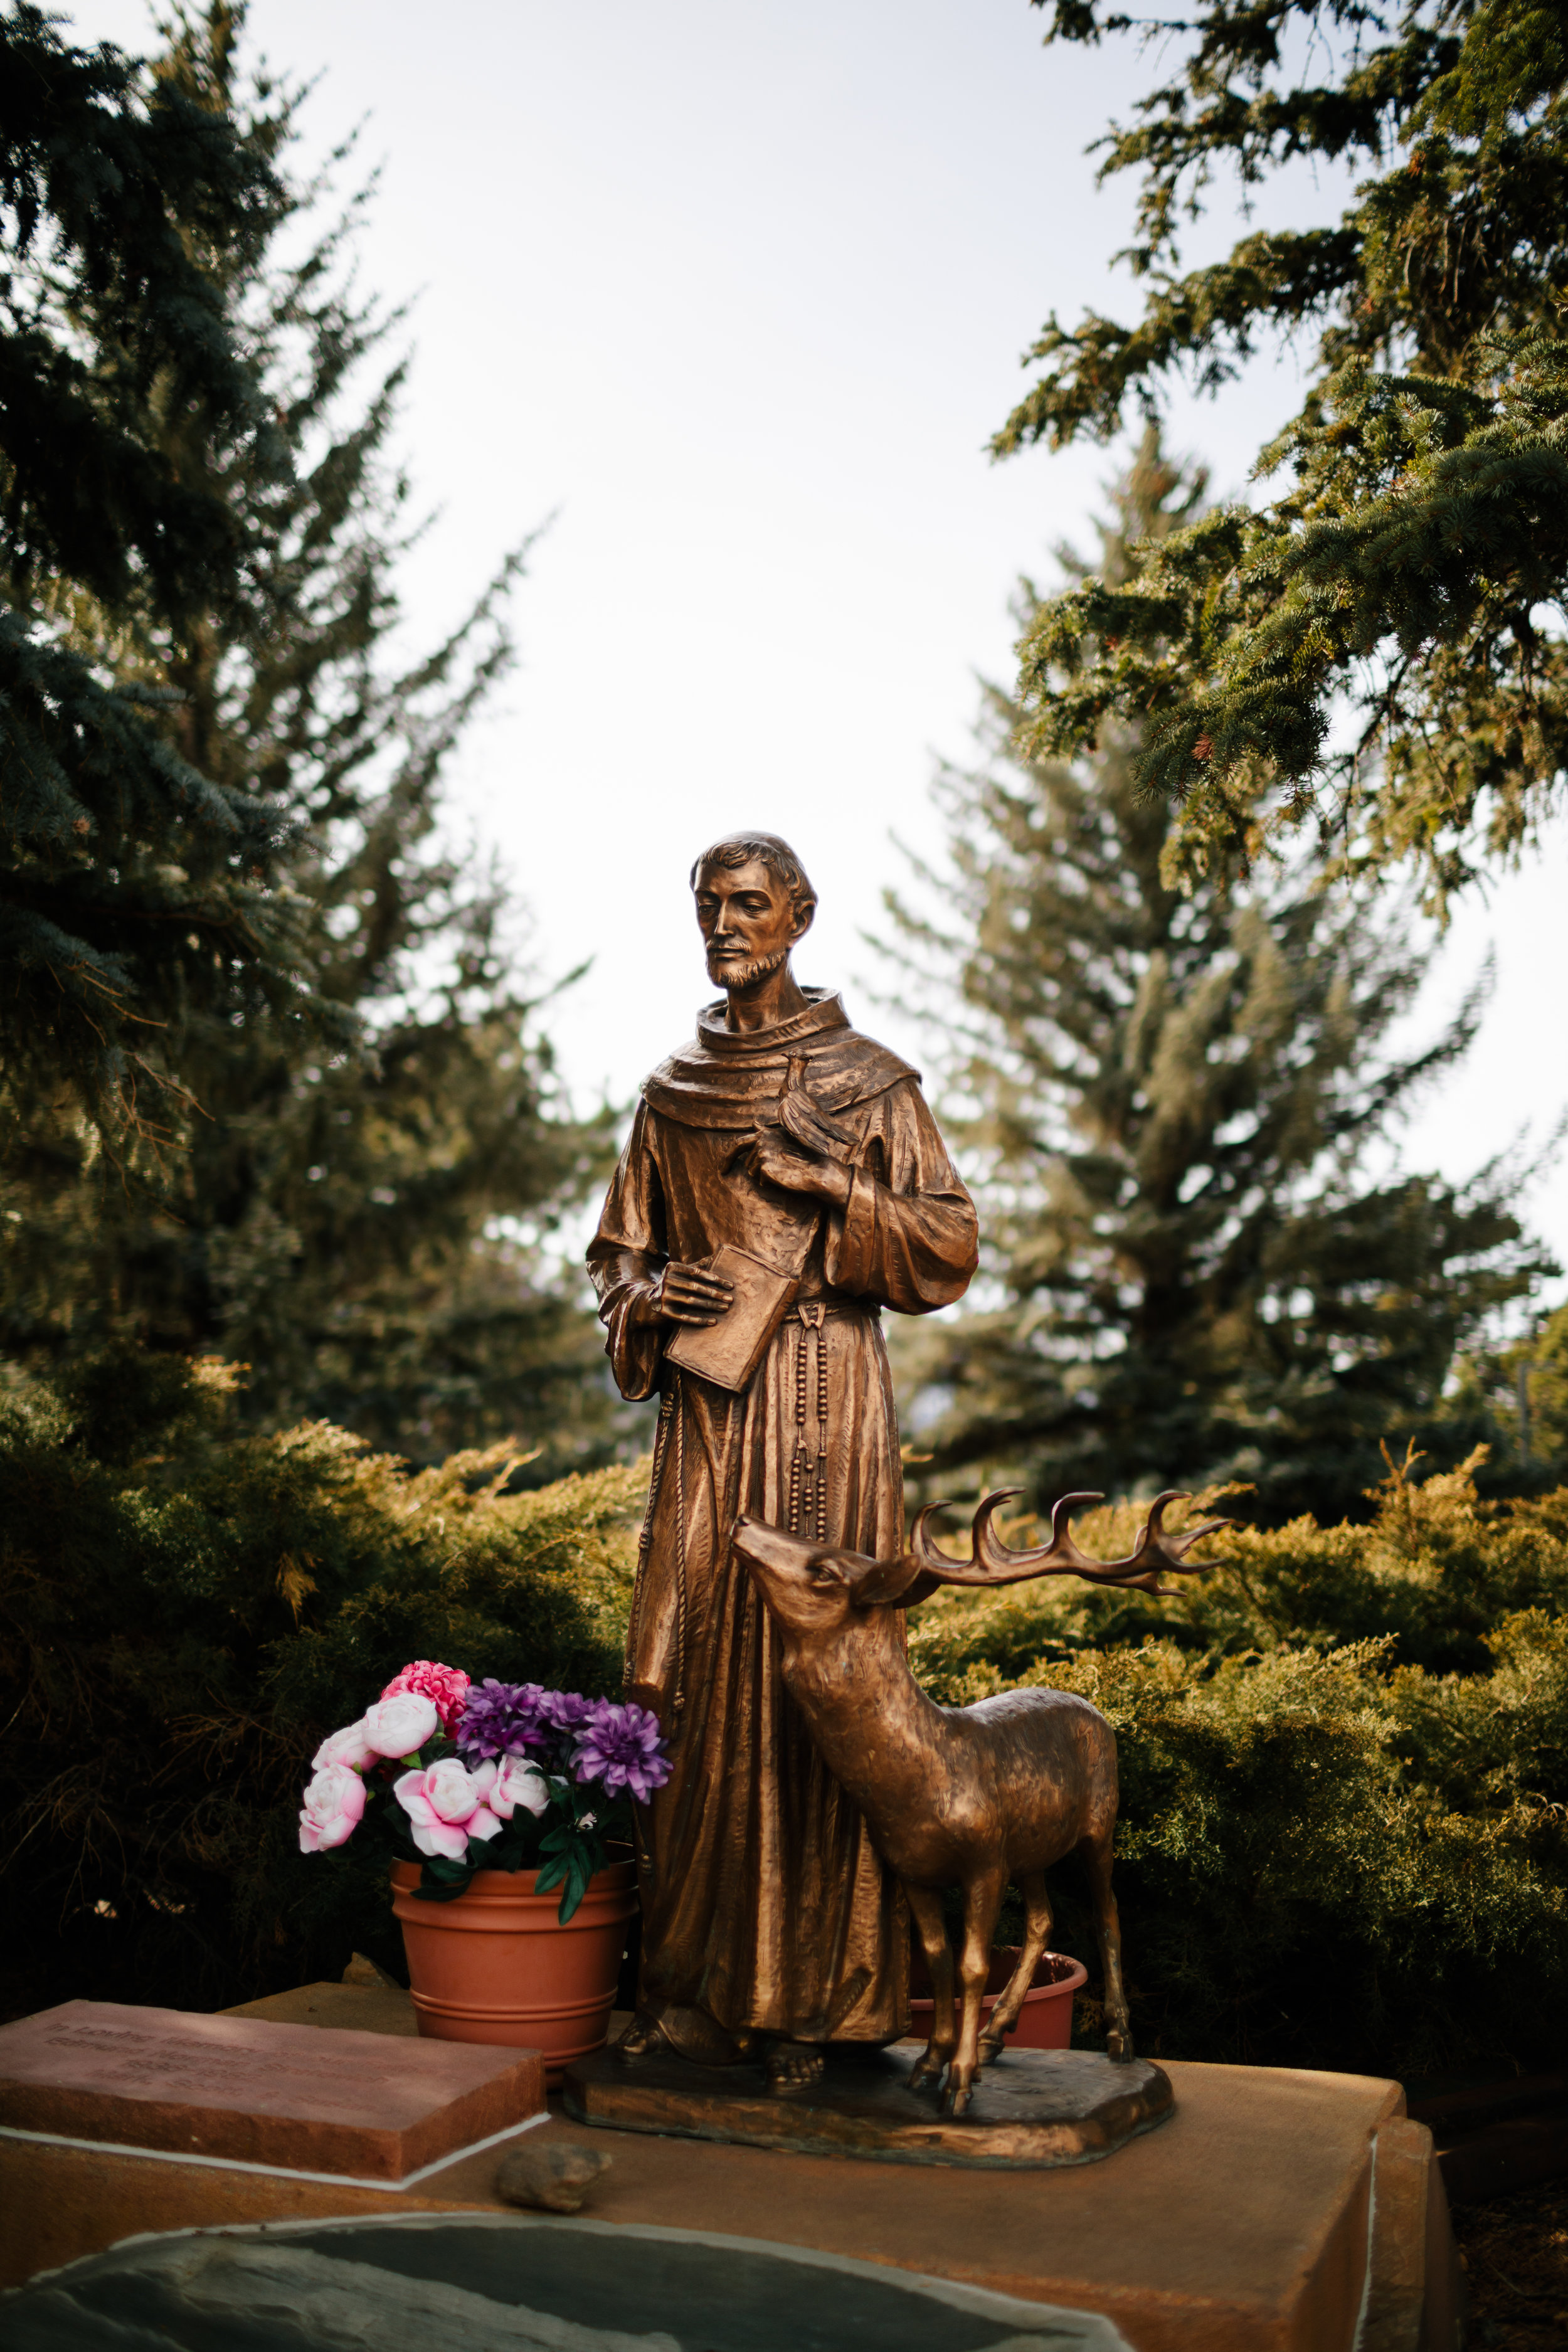 Our parish is named after St. Francis, one of the most widely recognized and revered of the saints. He is known for his dedication to the Gospel, his care for the poor, and his emphasis on caring for nature and all creatures.